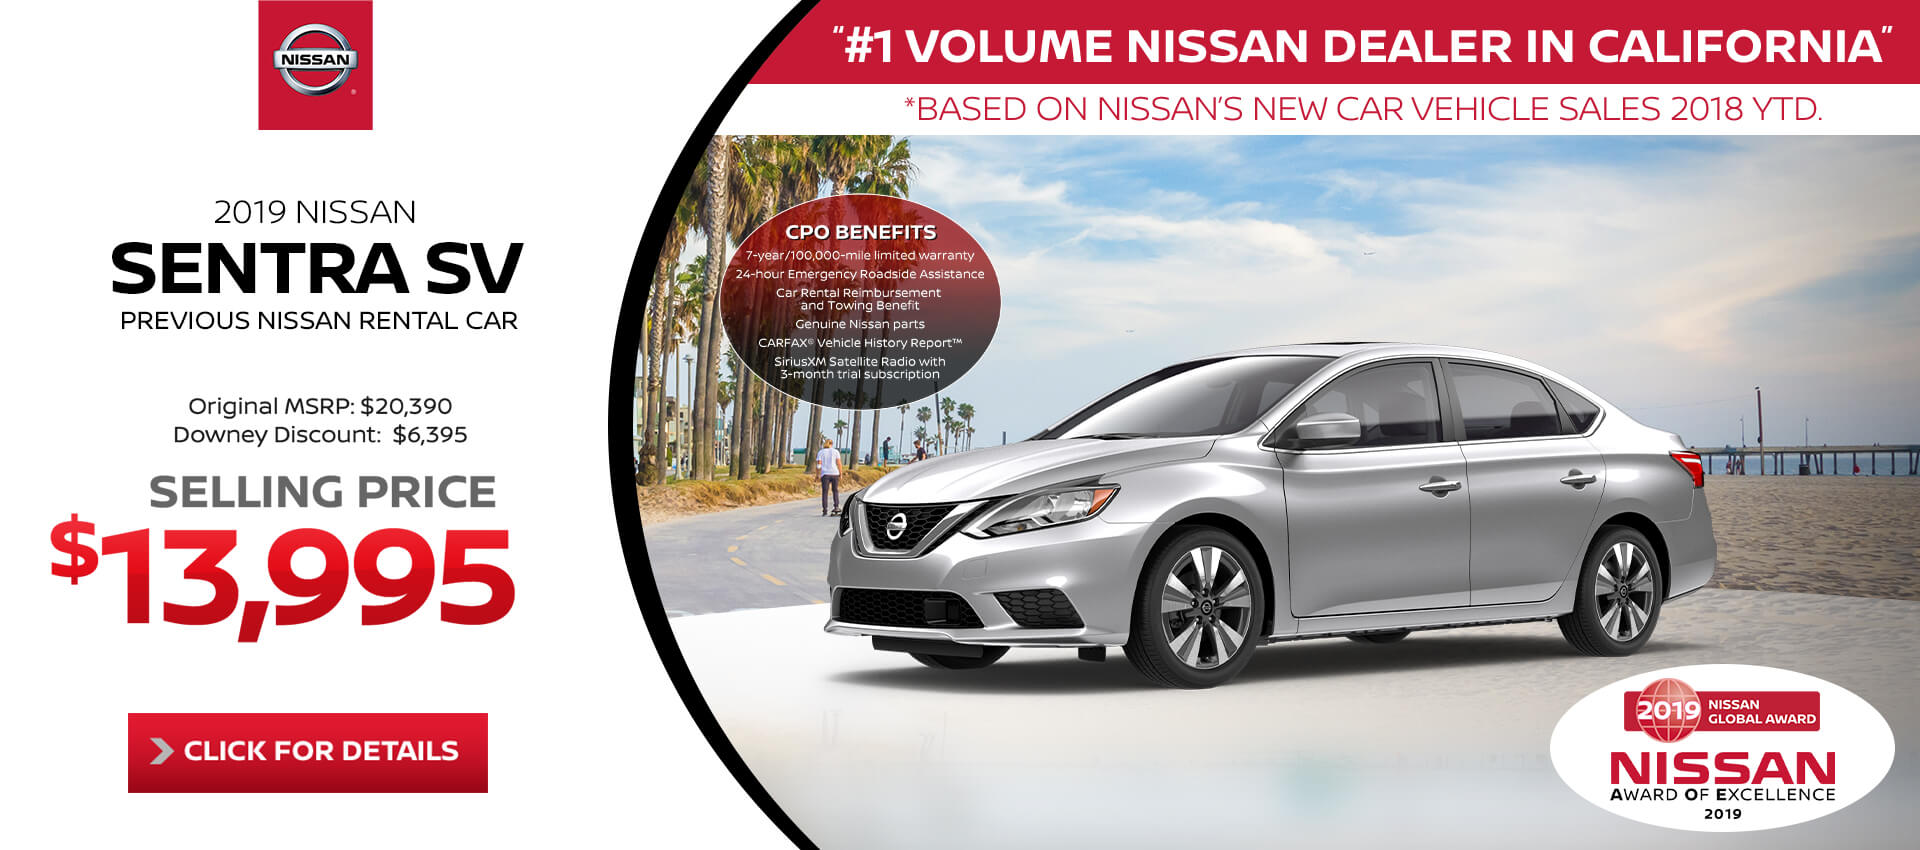 Nissan Dealership Los Angeles >> Downey Nissan California S 1 Volume Nissan Dealer